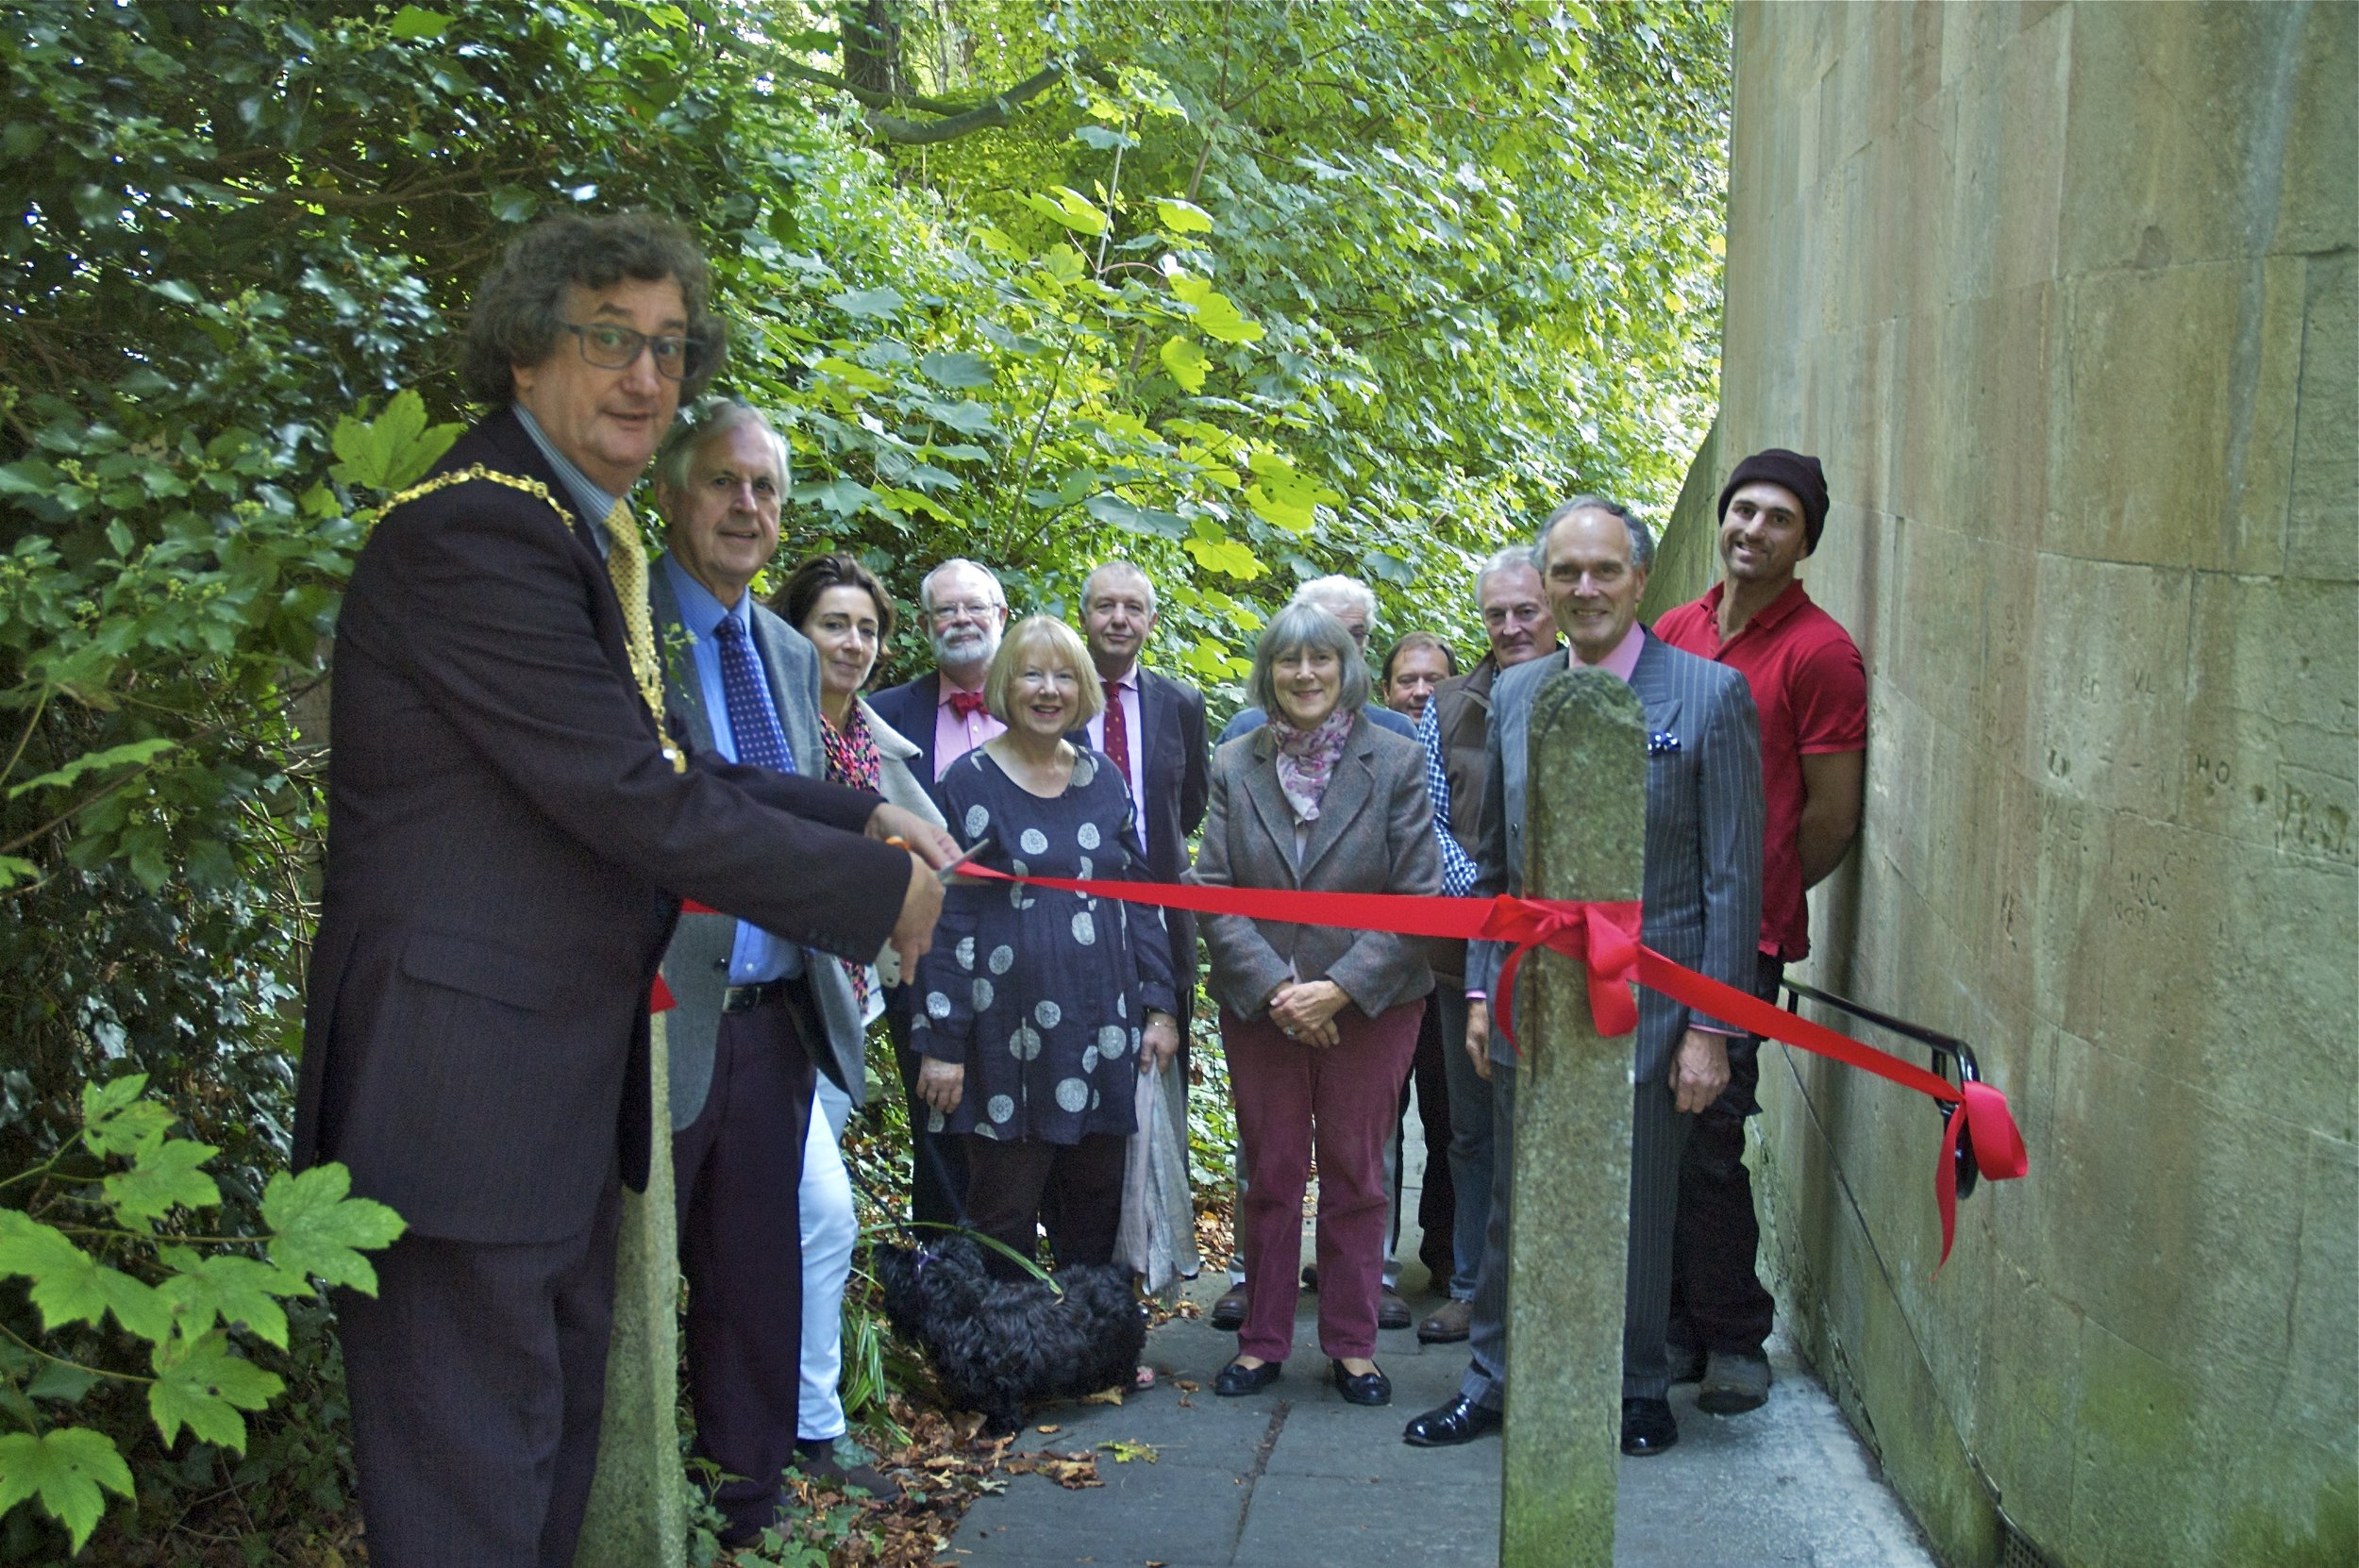 Opening of the new Park Street footpath rail, October 2013